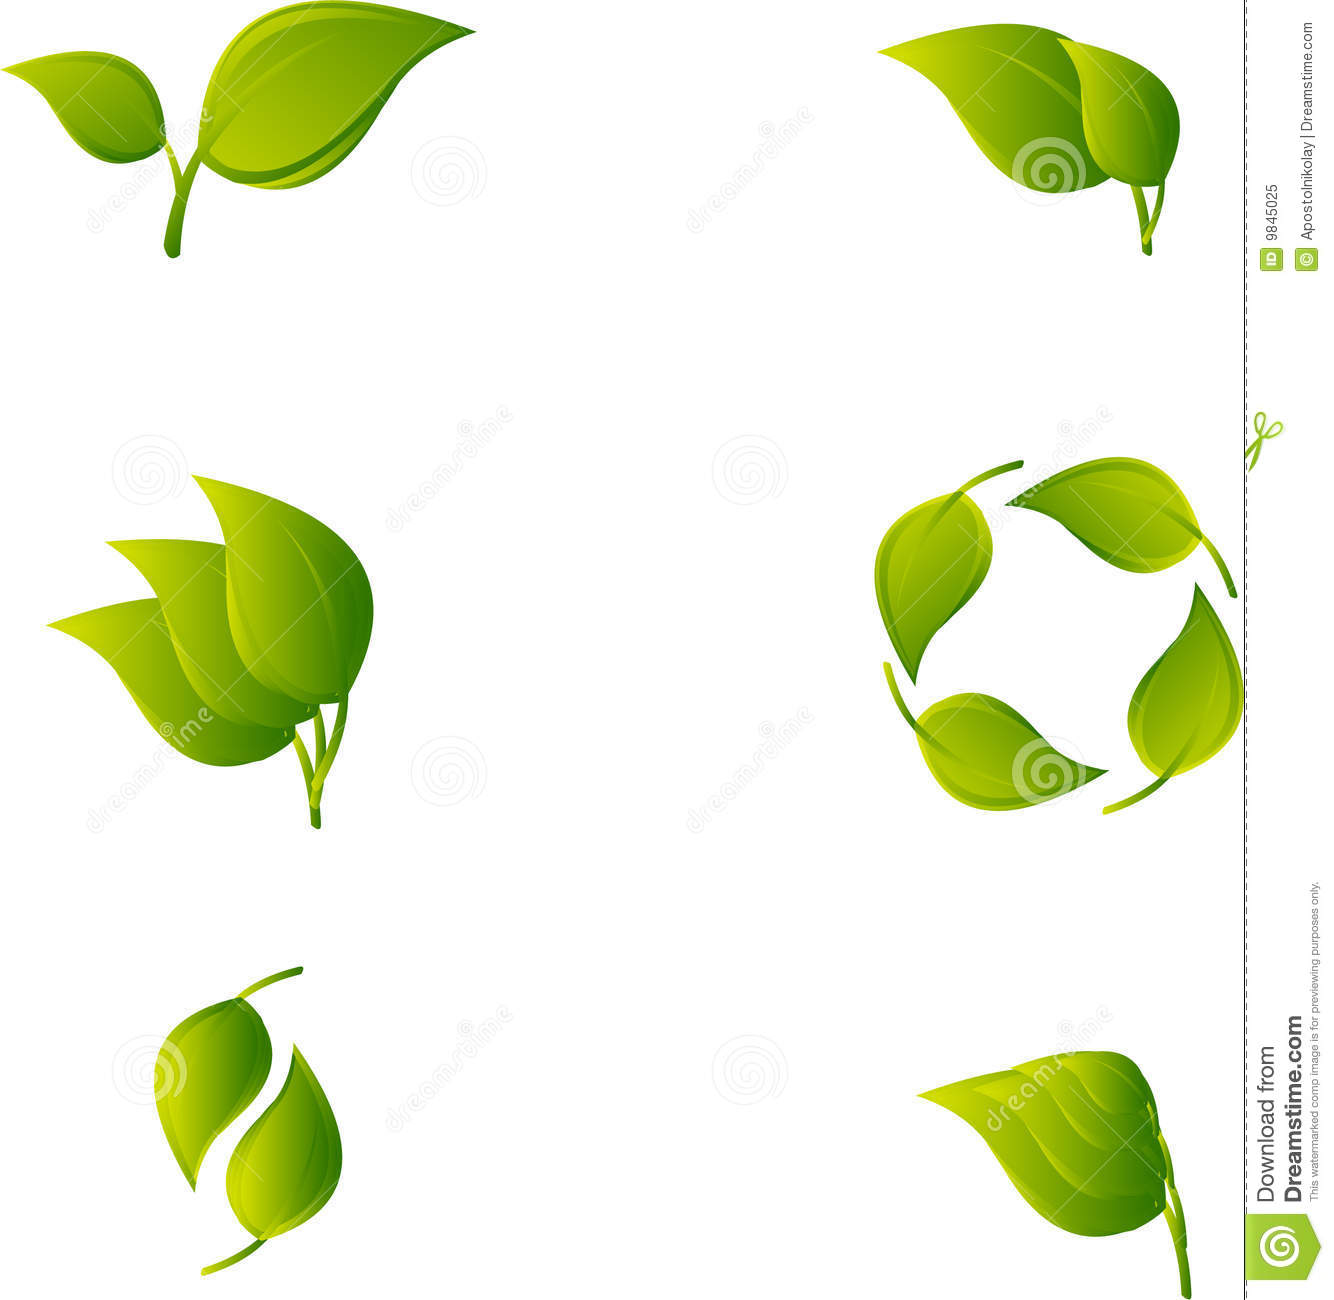 Set Of Abstract Green Leaf Royalty Free Stock Photo